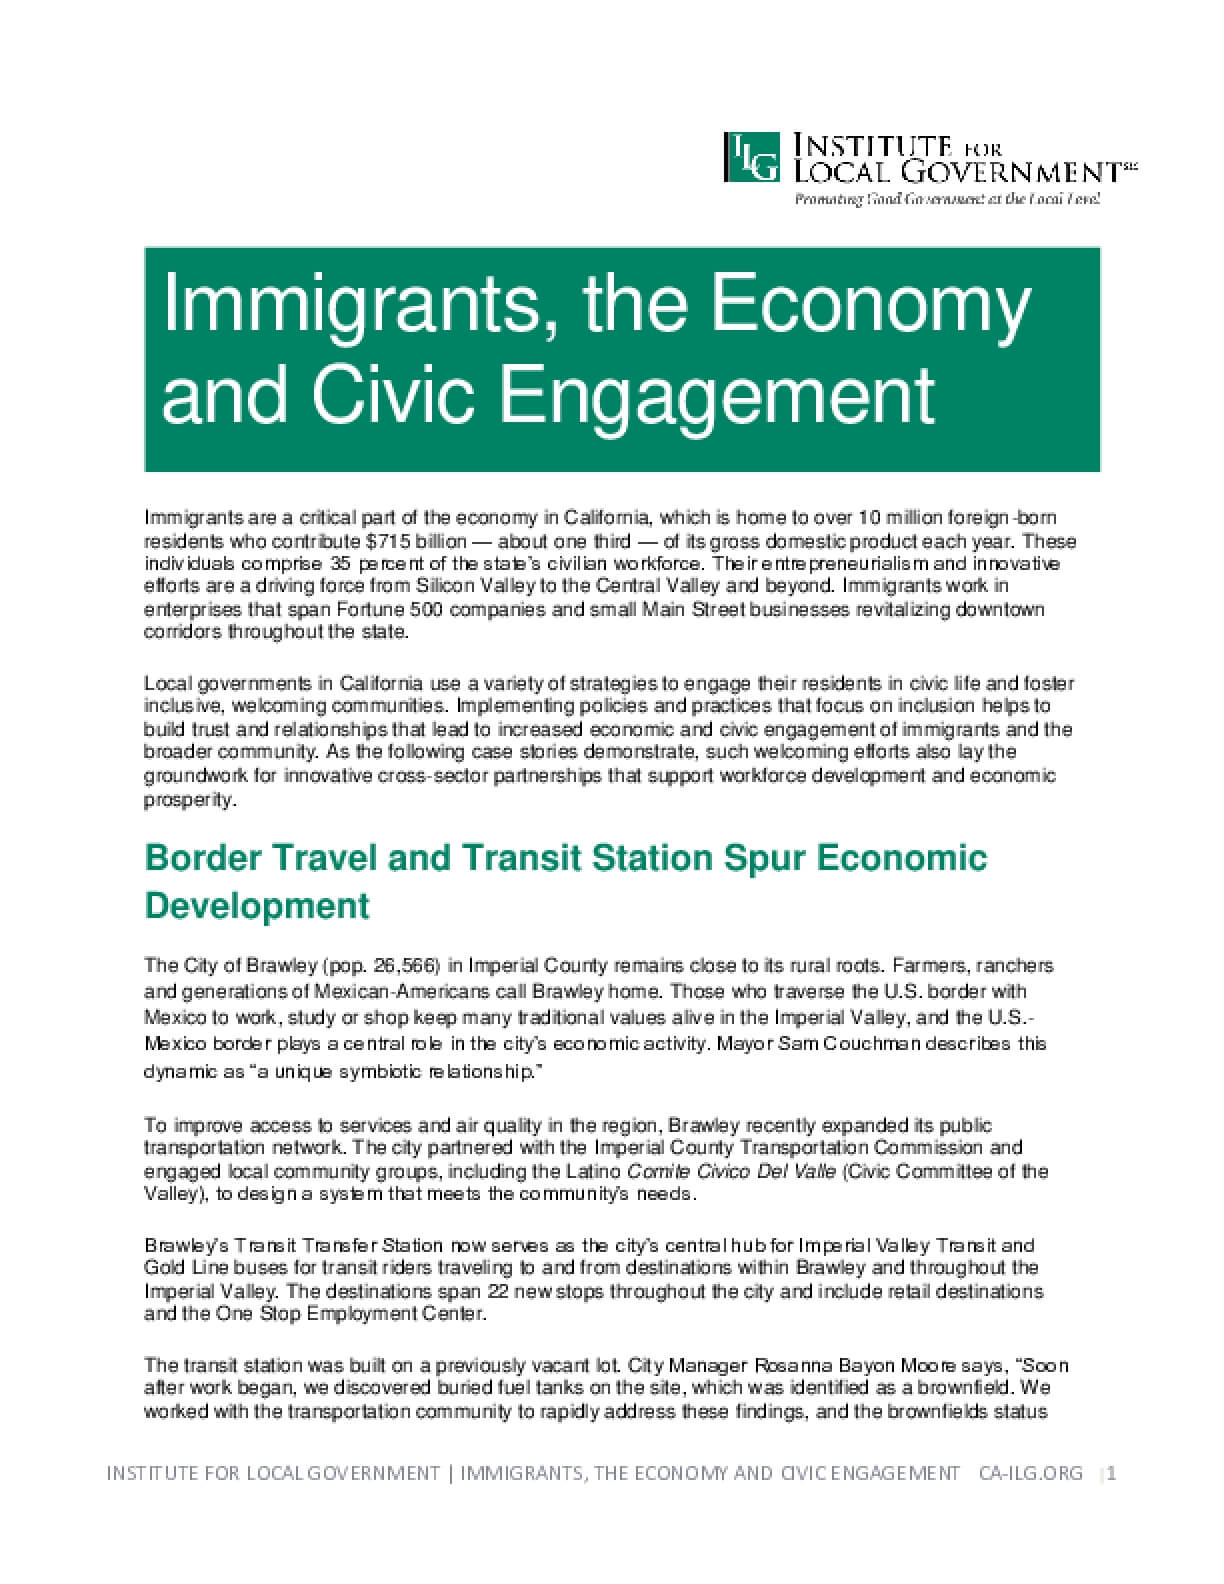 Immigrants, the Economy and Civic Engagement